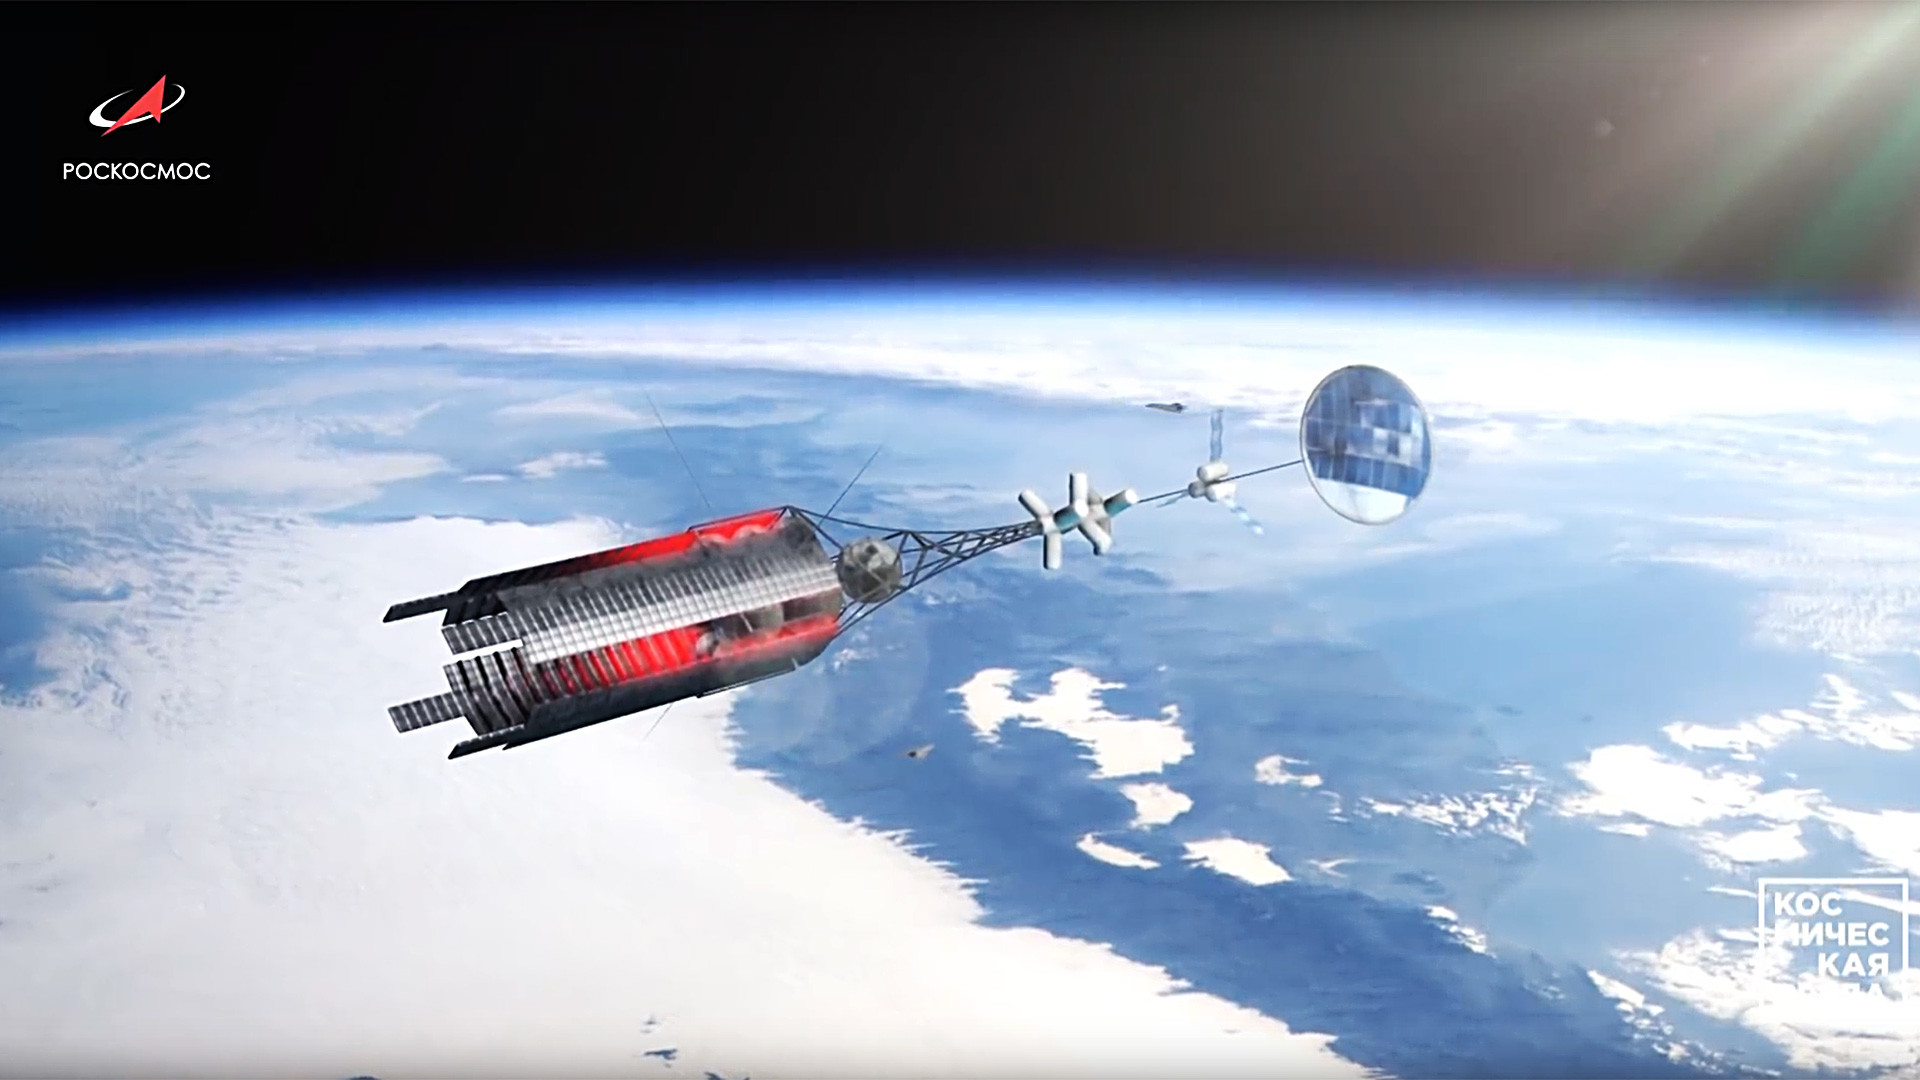 Roscosmos' new spaceship looks like something straight out of 'Avatar' -  Russia Beyond